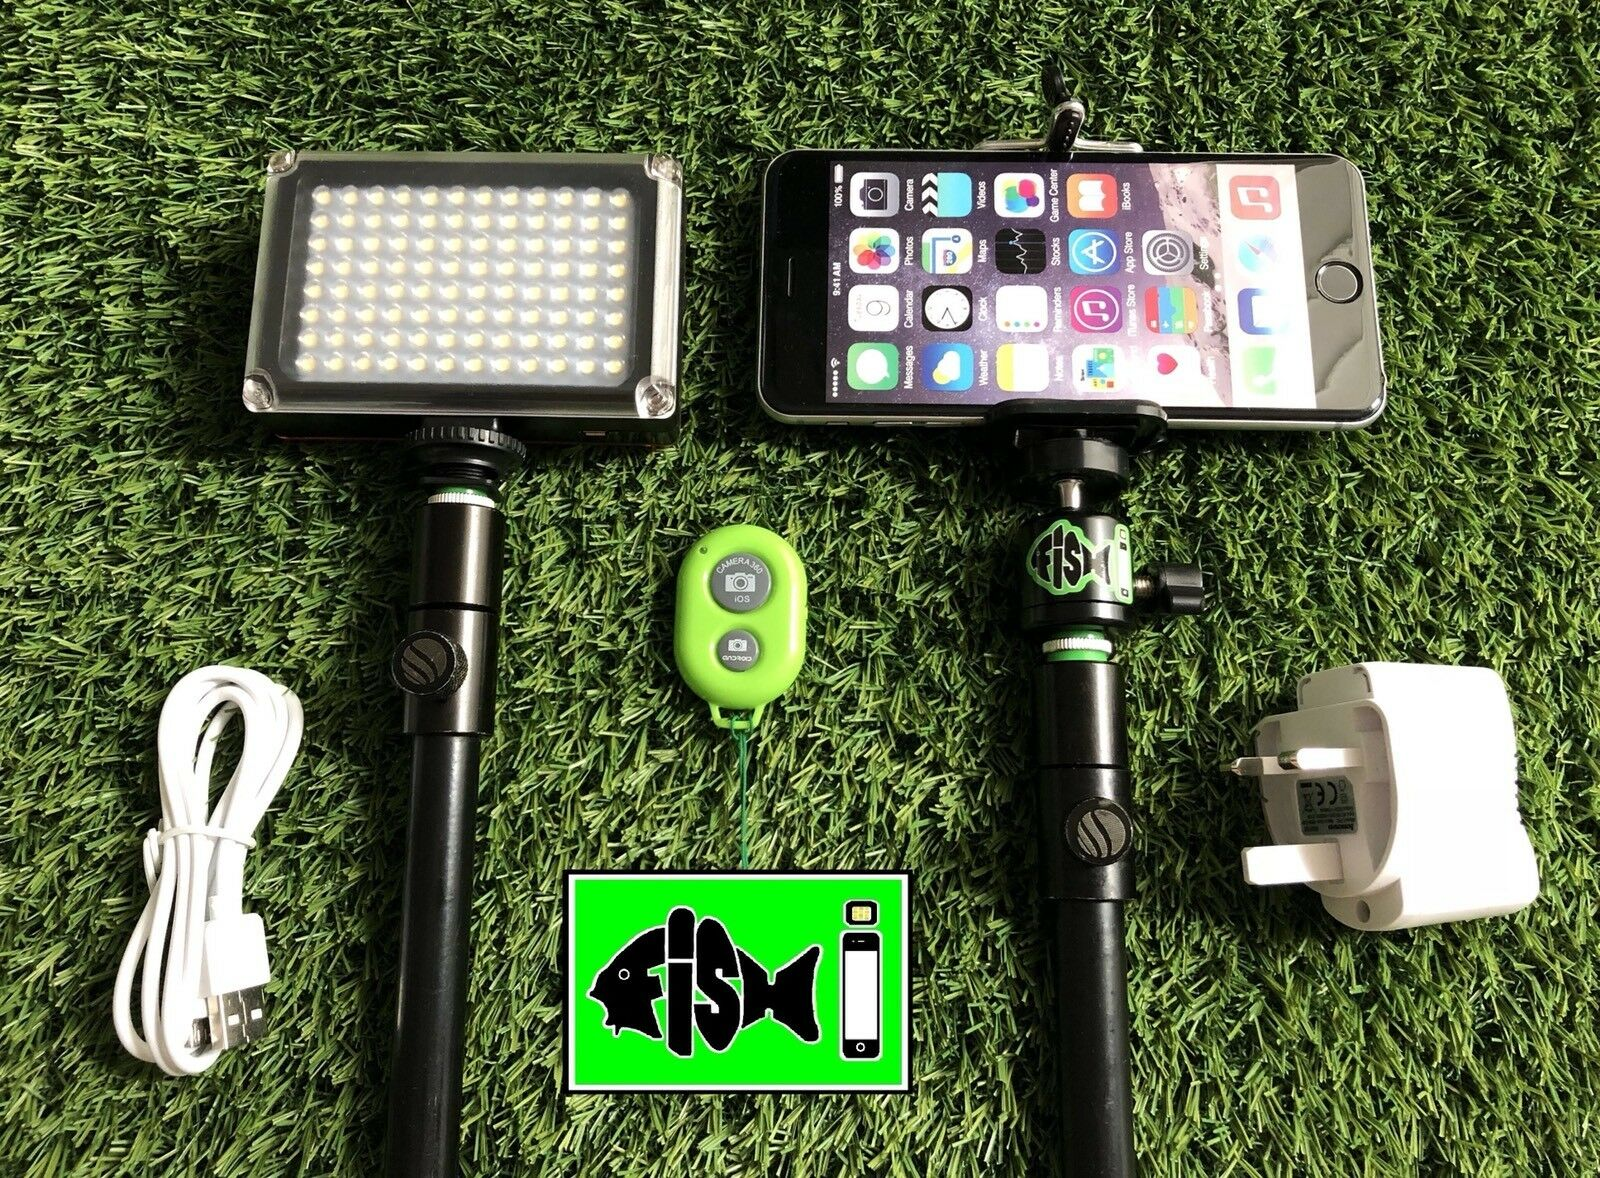 Fish I Phone Holder For Fishing Inc blueetooth Remote & Rechargeable 96 Led Light